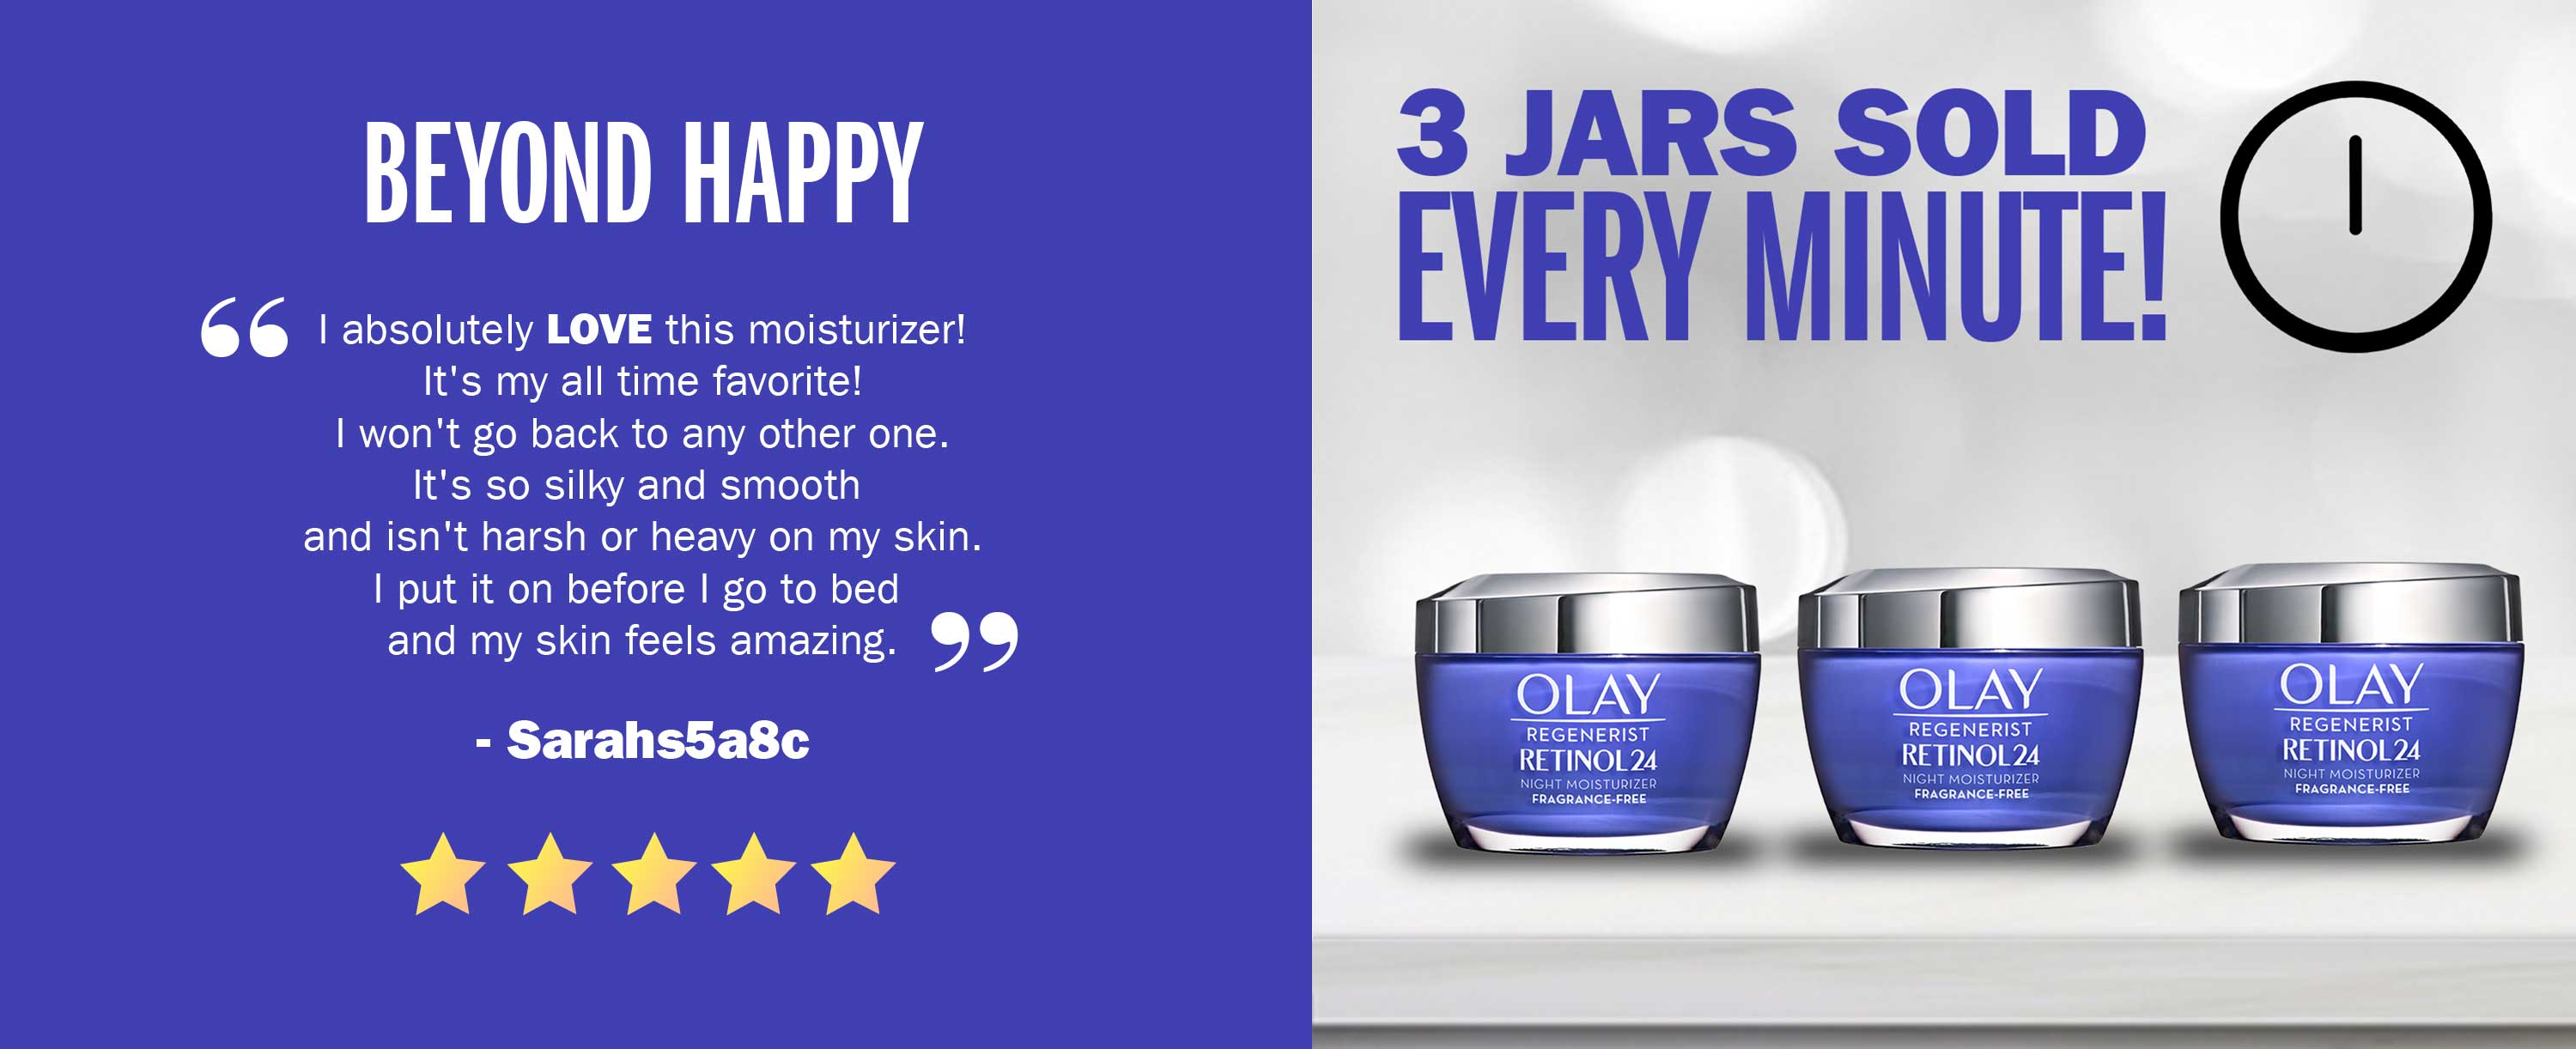 "3 jars sold every minute! Our Olay Regenerist Retinol24 MAX is getting rave 5-star reviews - ""I absolutely LOVE this moisturizer! It's my all time favorite! I won't go back to any other one. It's so silky and smooth and isn't harsh or heavy on my skin. I put it on before I go to bed and my skin feels amazing"